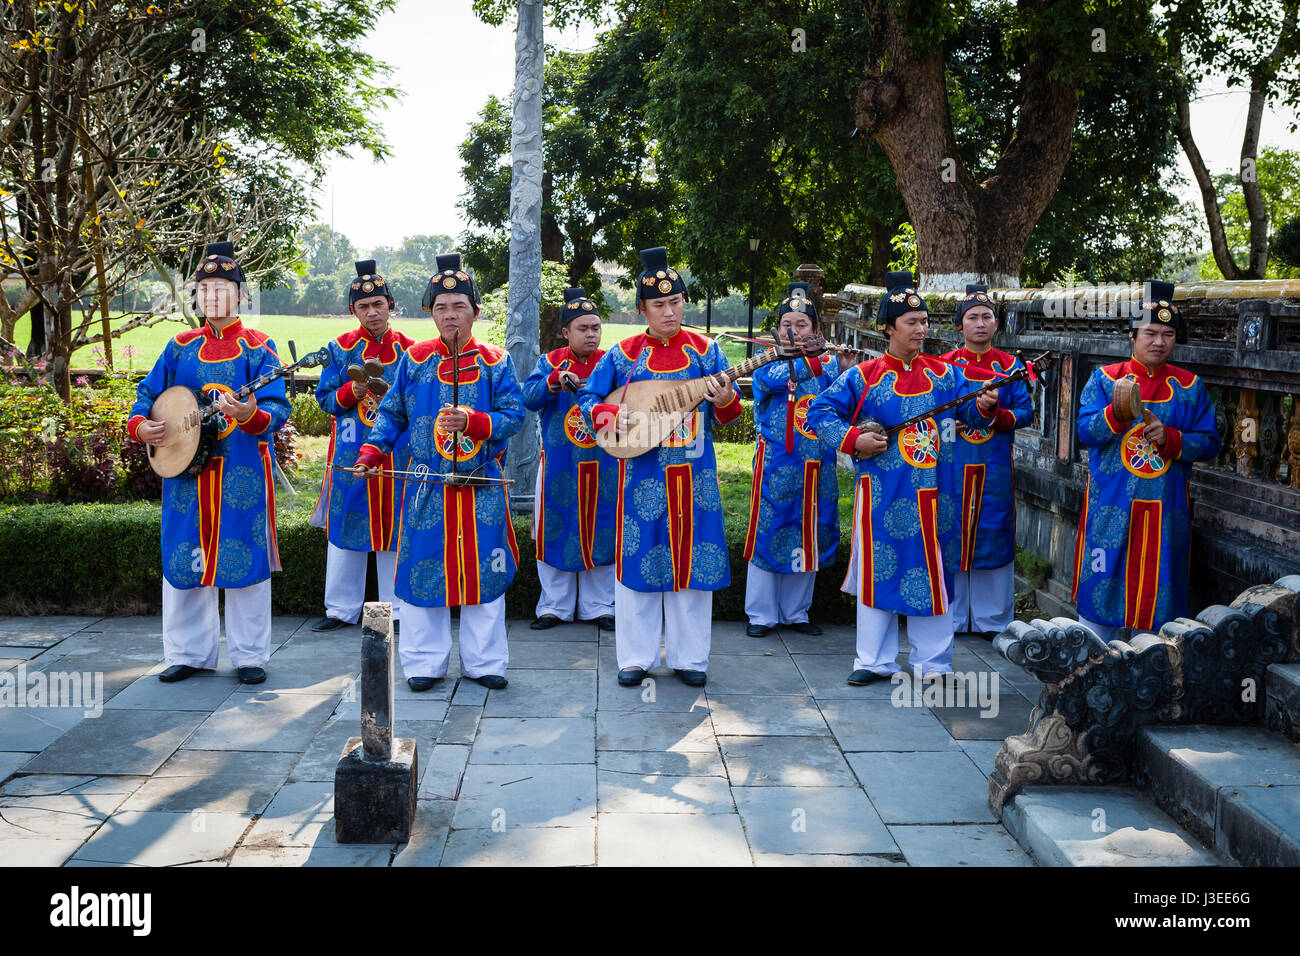 Hoi An, Vietnam - march 10 2017: vietnamese traditional music band is giving concert in Imperial Citadel Stock Photo